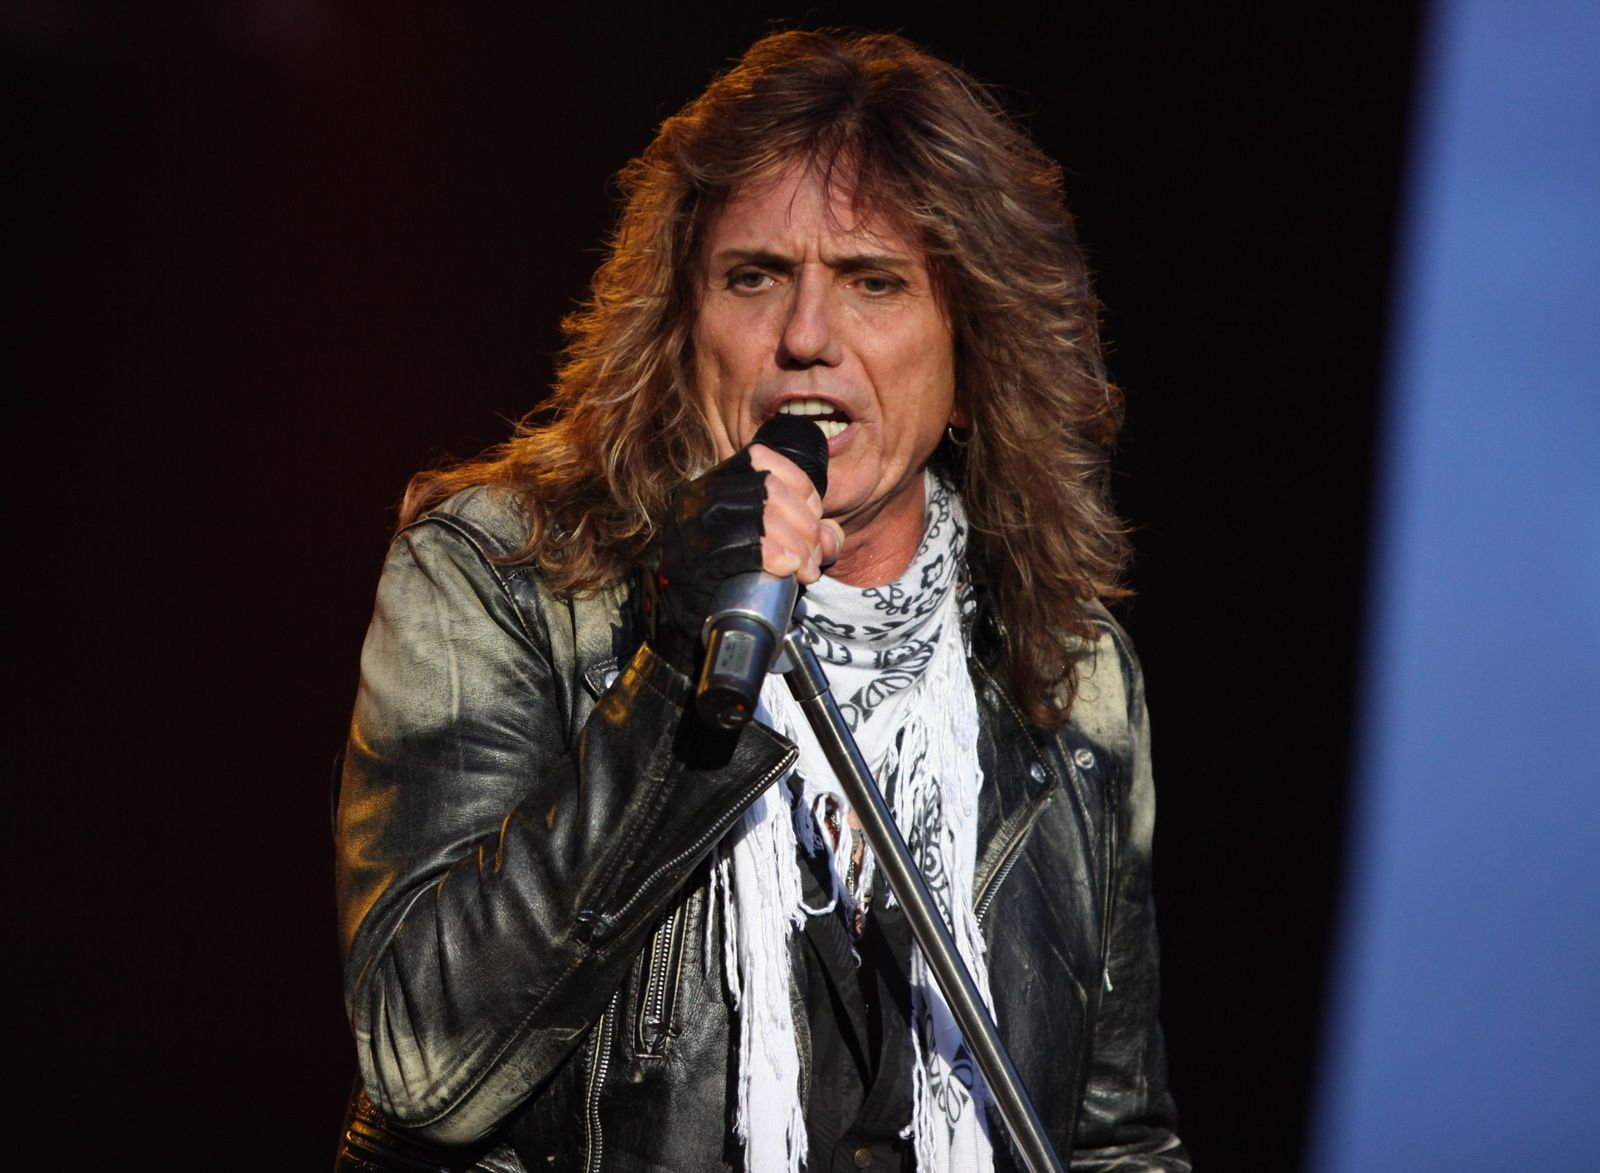 David Coverdale, Whitesnake (2009)